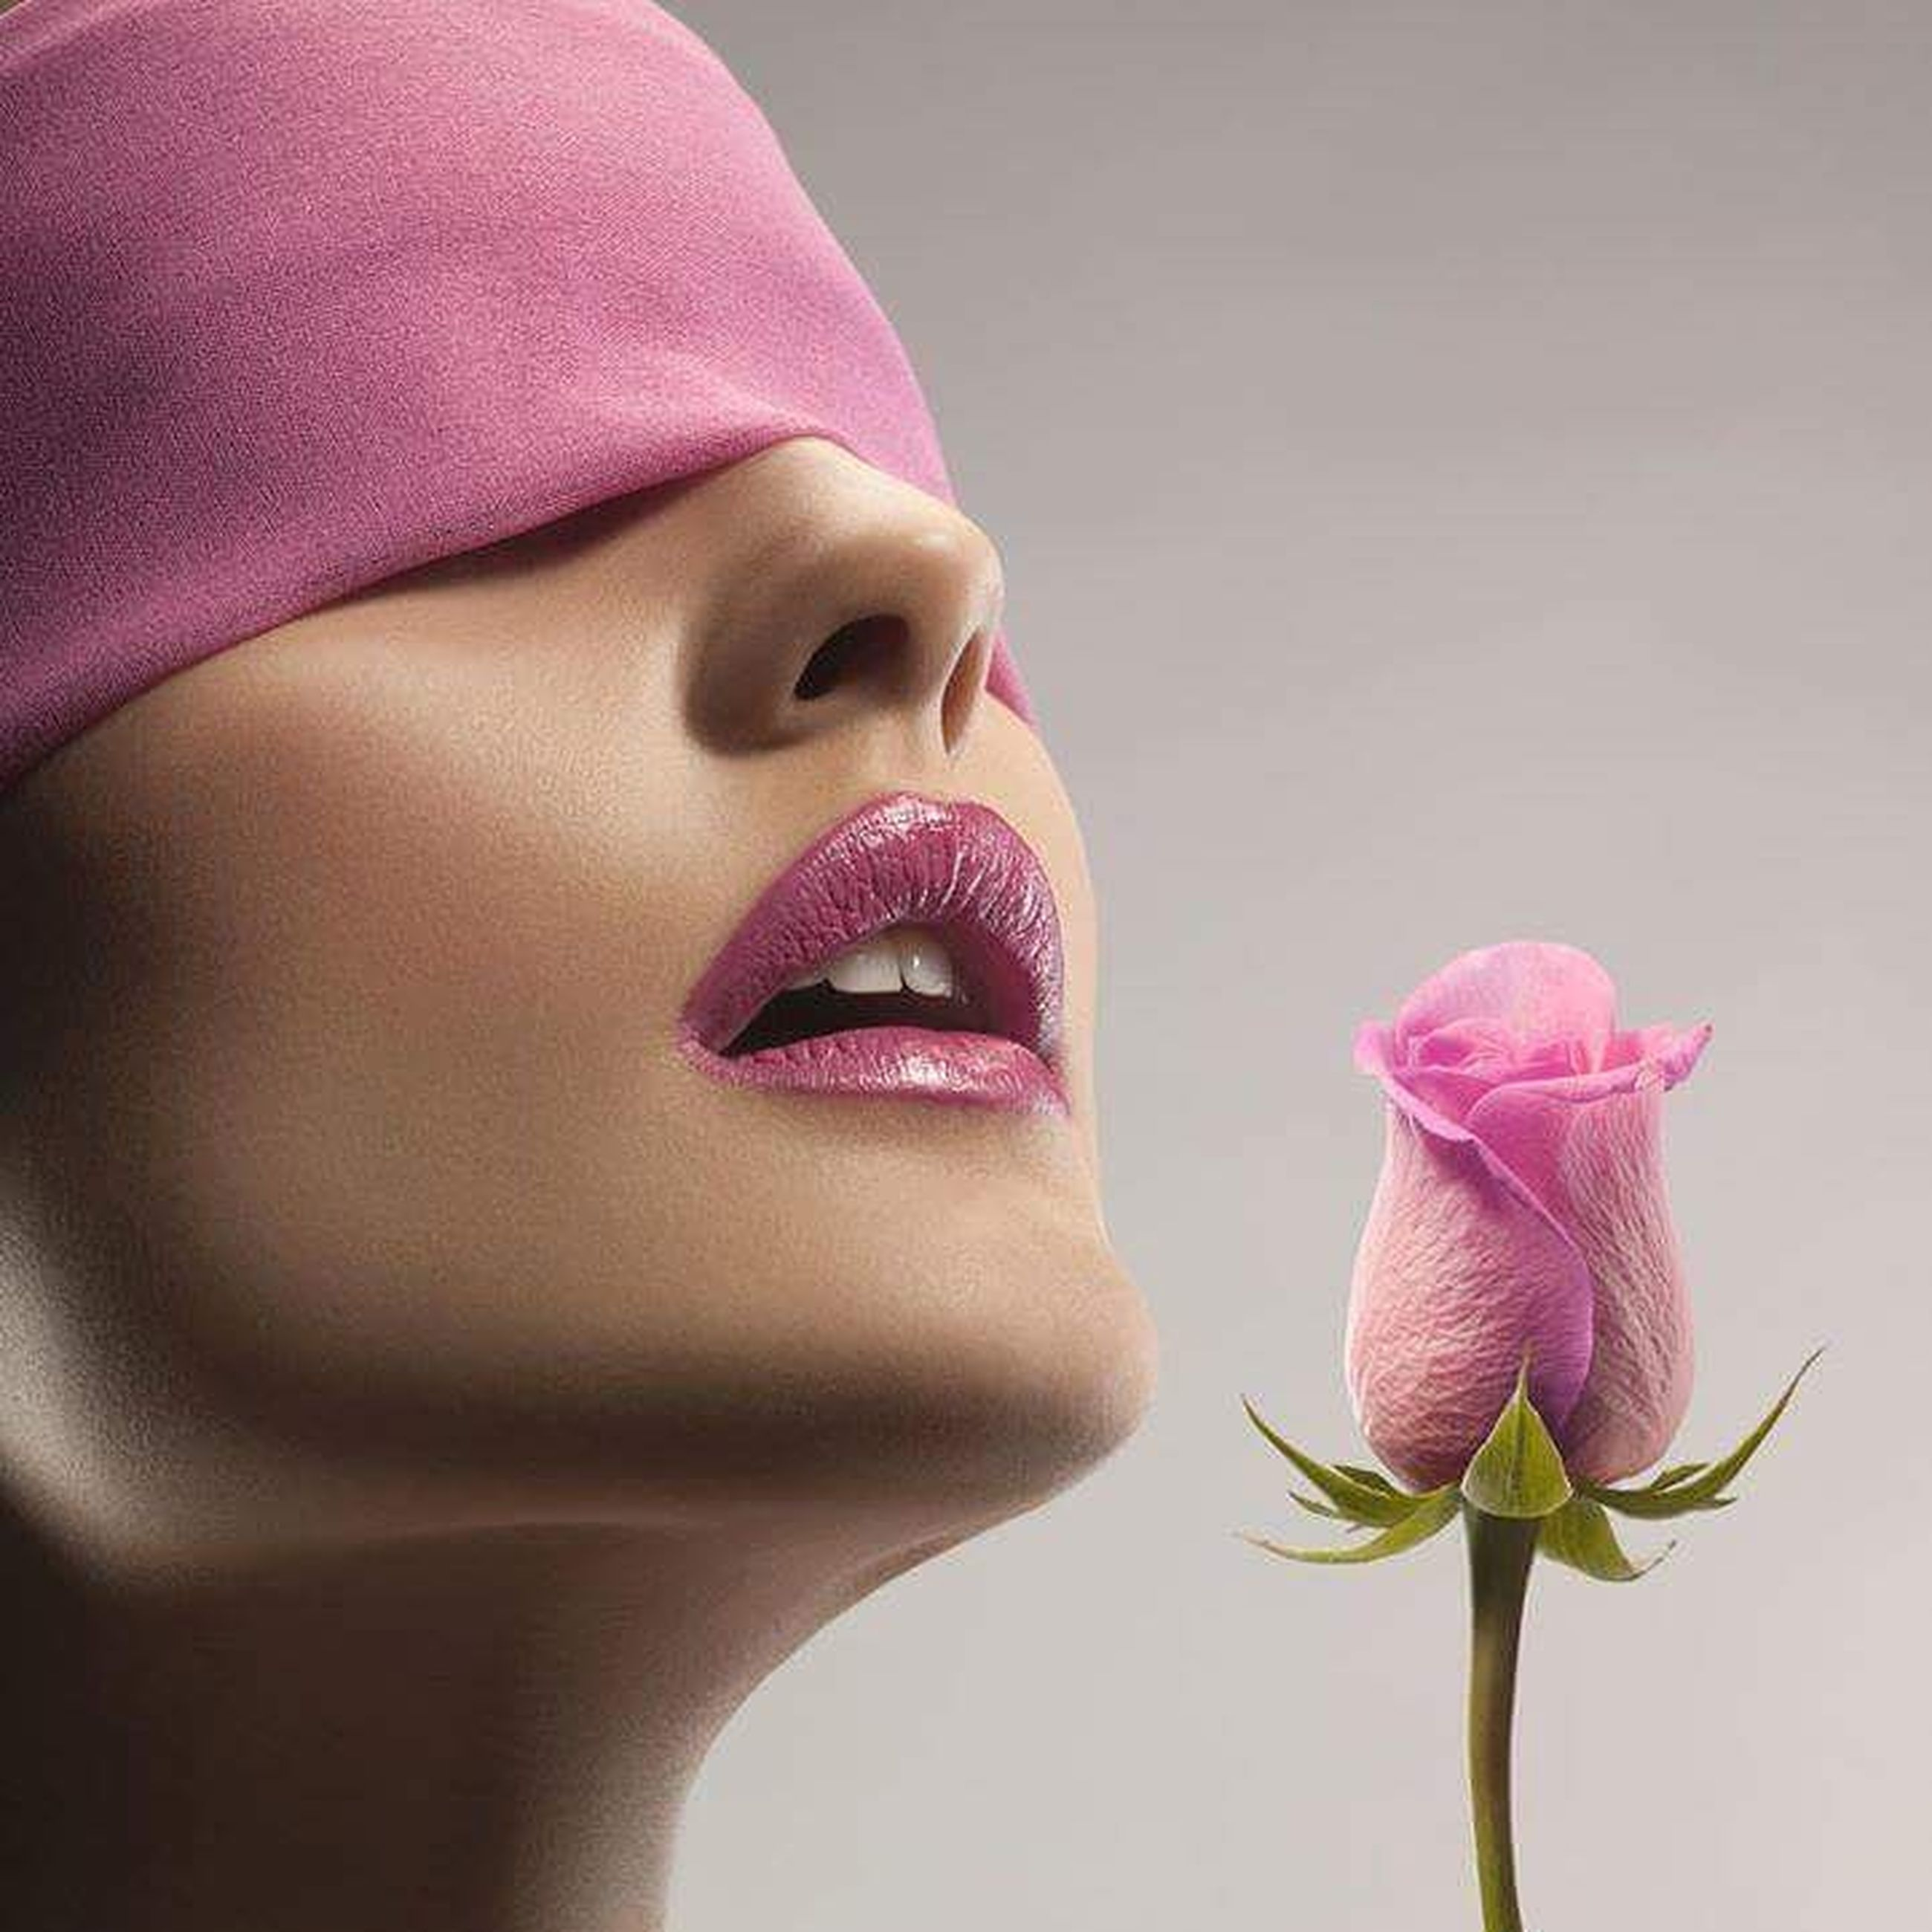 pink color, beauty, beauty product, one woman only, only women, one young woman only, lipstick, human body part, human face, beautiful woman, young adult, make-up, human lips, adults only, purple, close-up, adult, females, one person, people, indoors